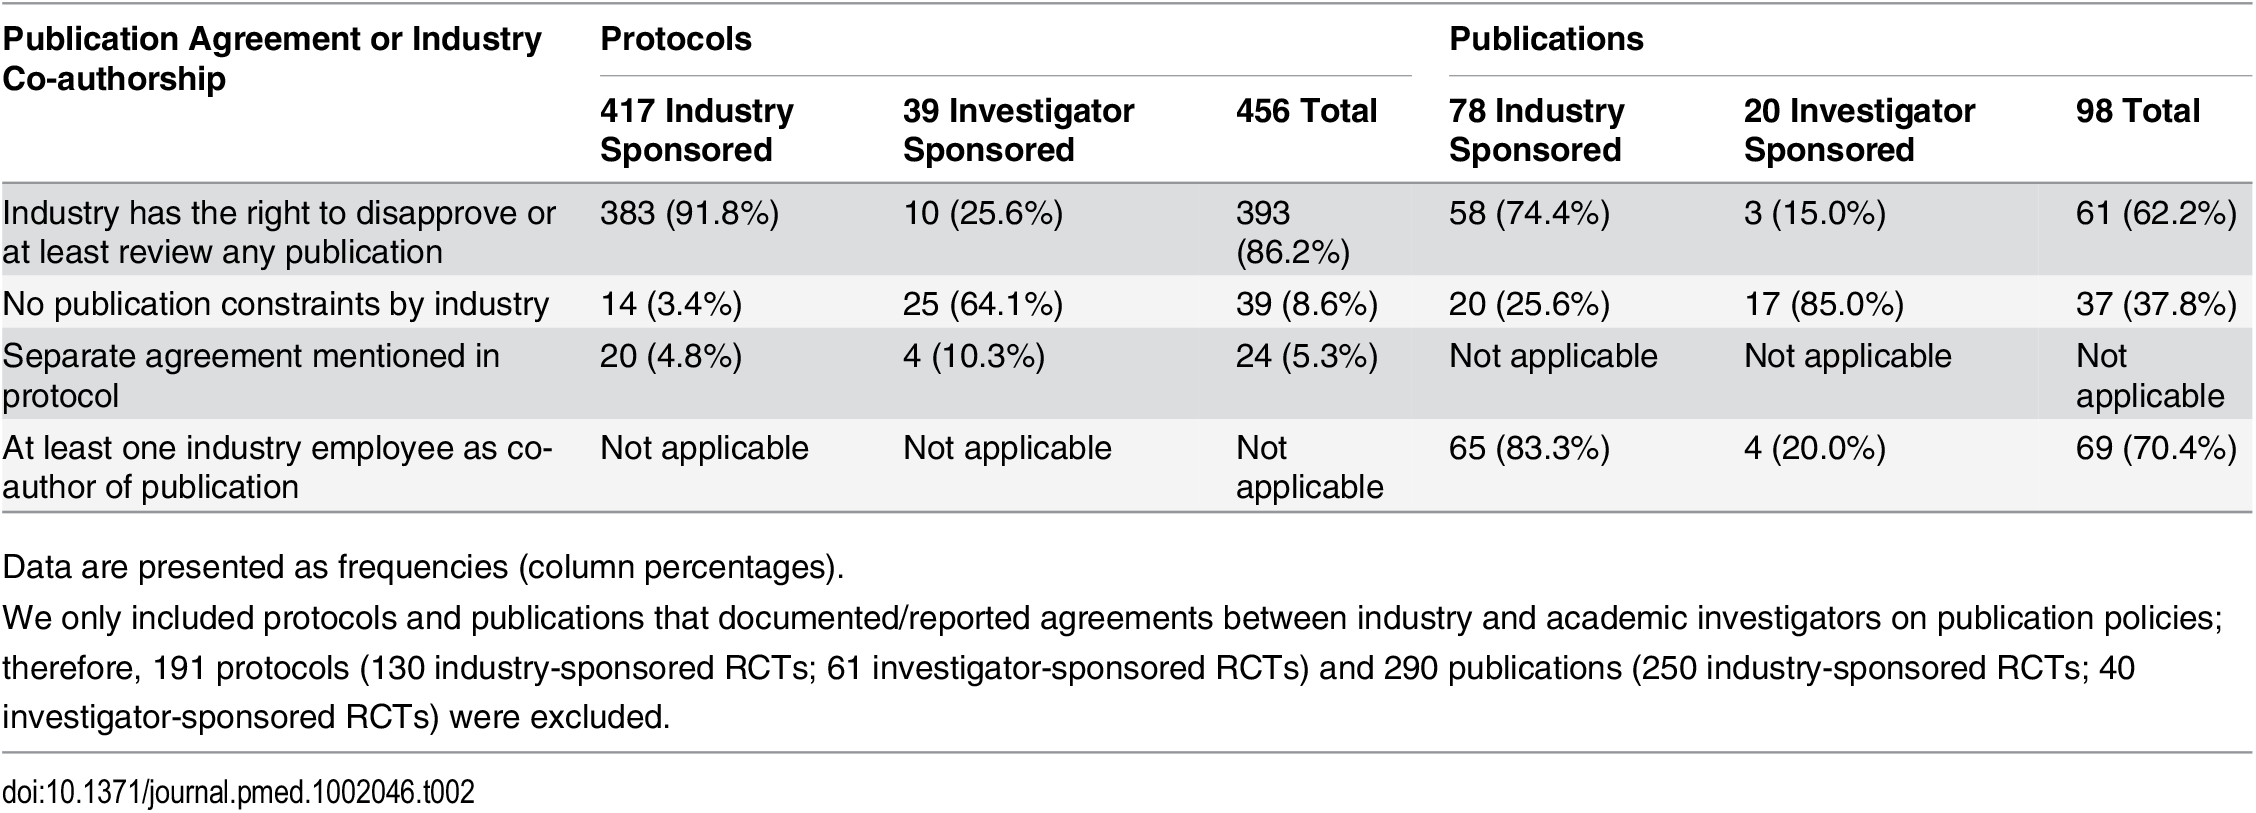 Types of publication agreements and industry employee co-authorship as documented in trial protocols and reported in journal publications.